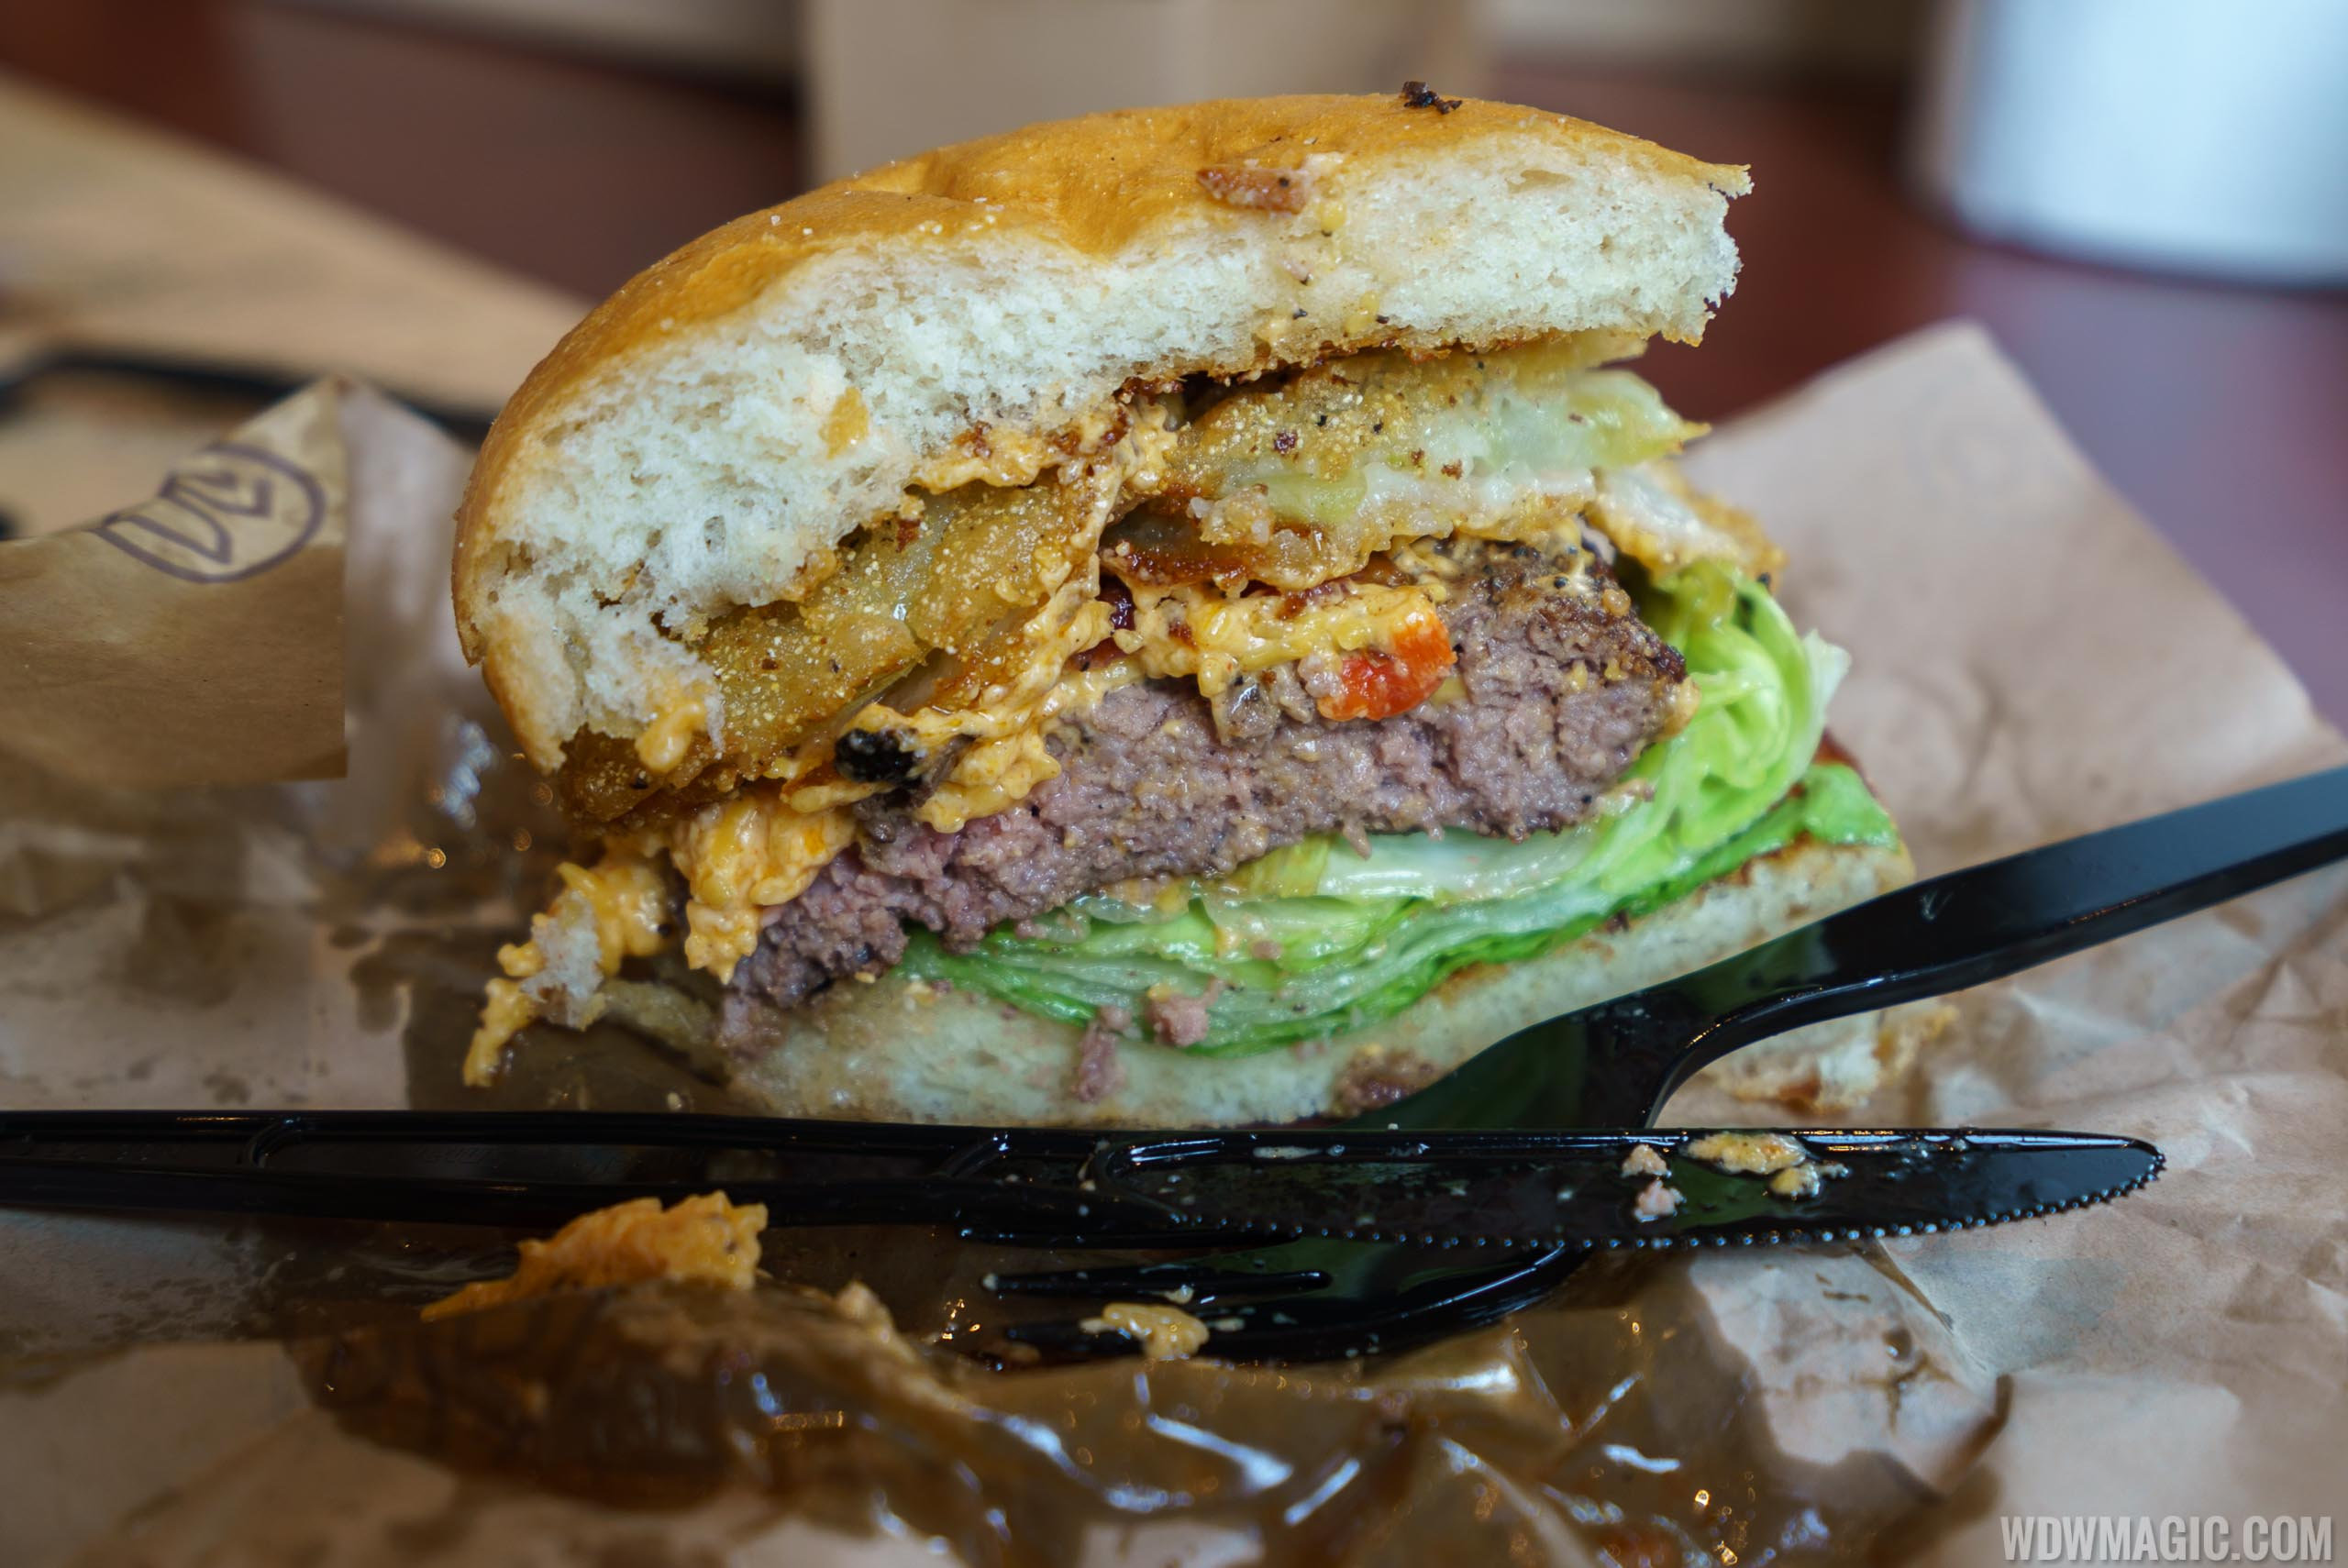 D-Luxe Burger - Southern Classic Burger